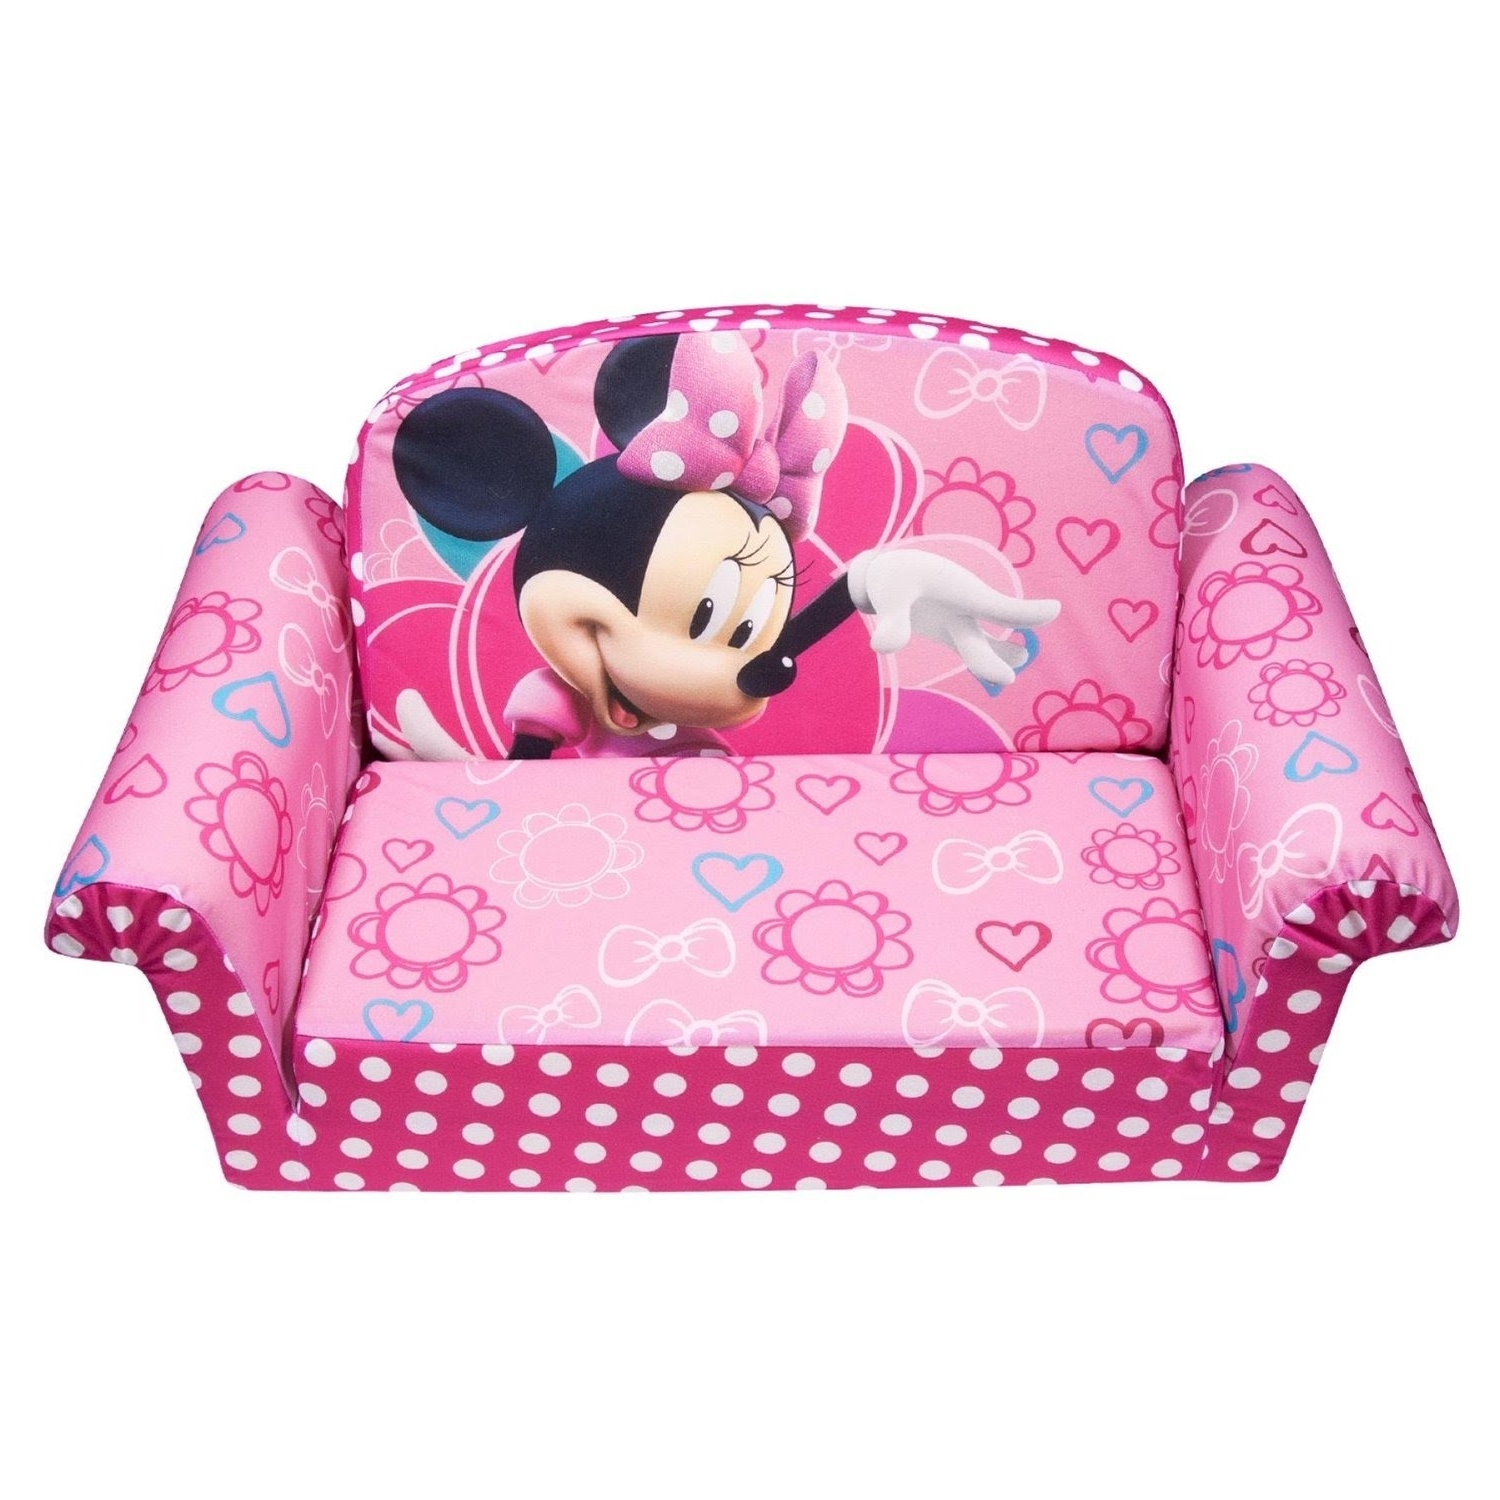 Disney Sofa Chairs Throughout Well Known Review: Marshmallow Children's Furniture – 2 In 1 Flip Open Sofa (View 3 of 20)